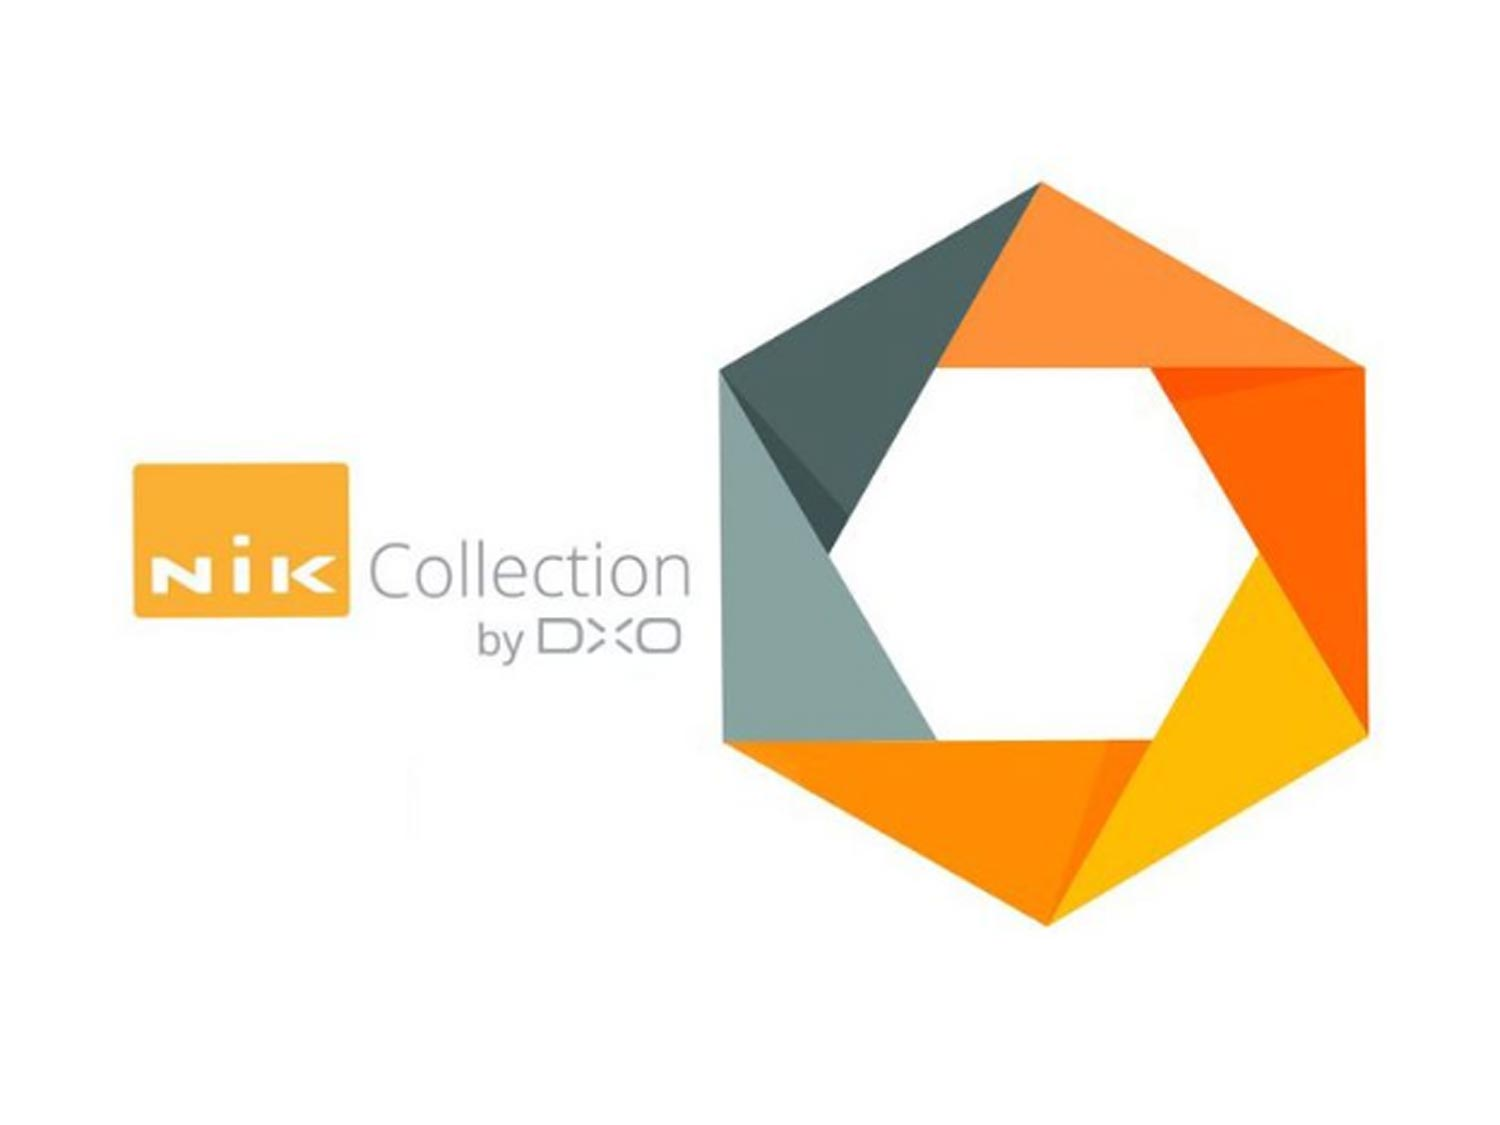 Nik Collection by DxO